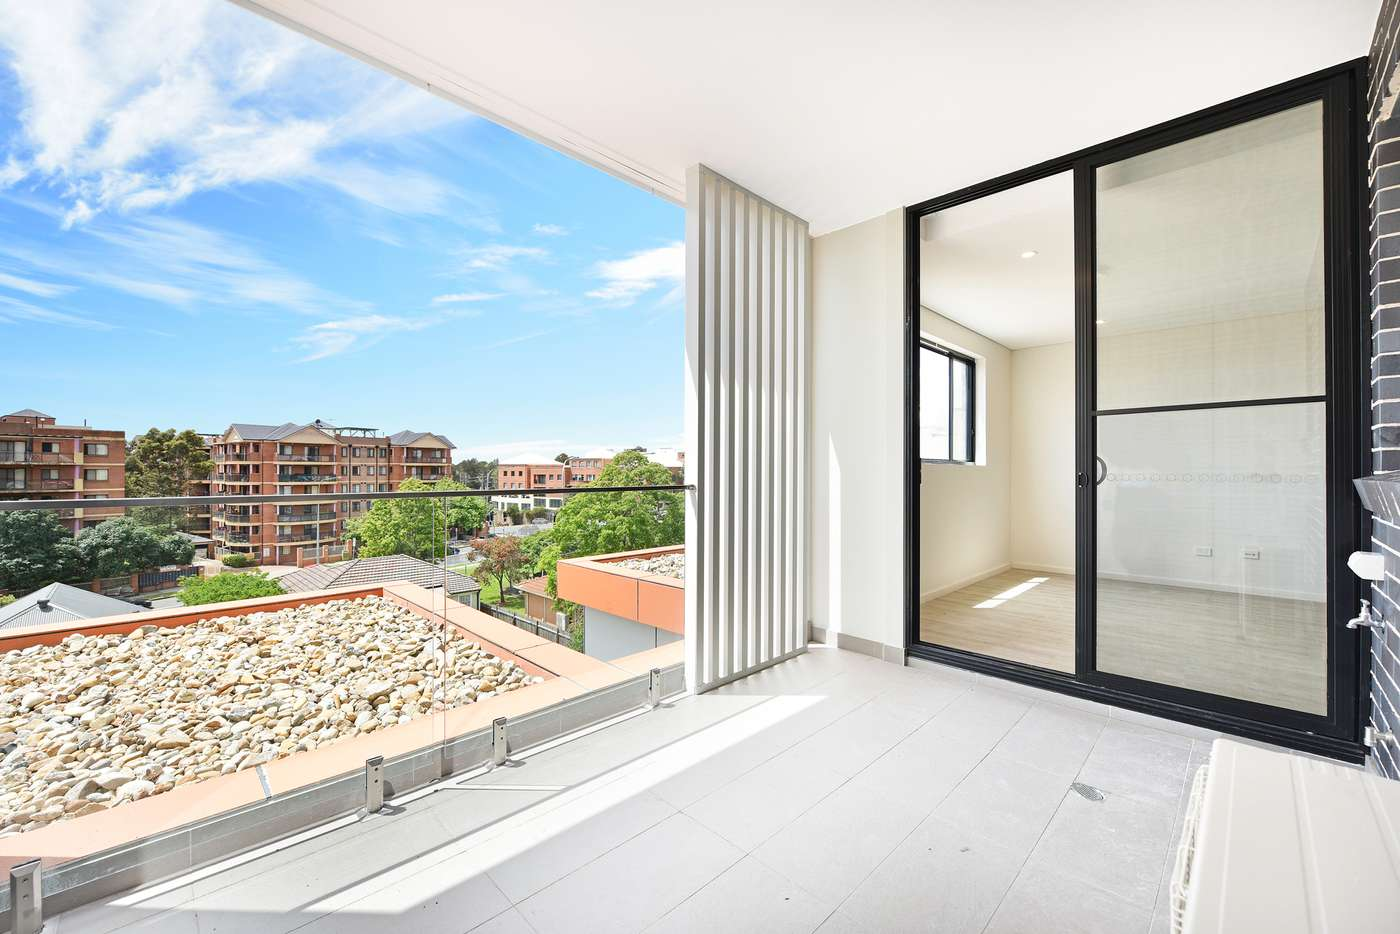 Sixth view of Homely apartment listing, 201/3 Balmoral Street, Blacktown NSW 2148